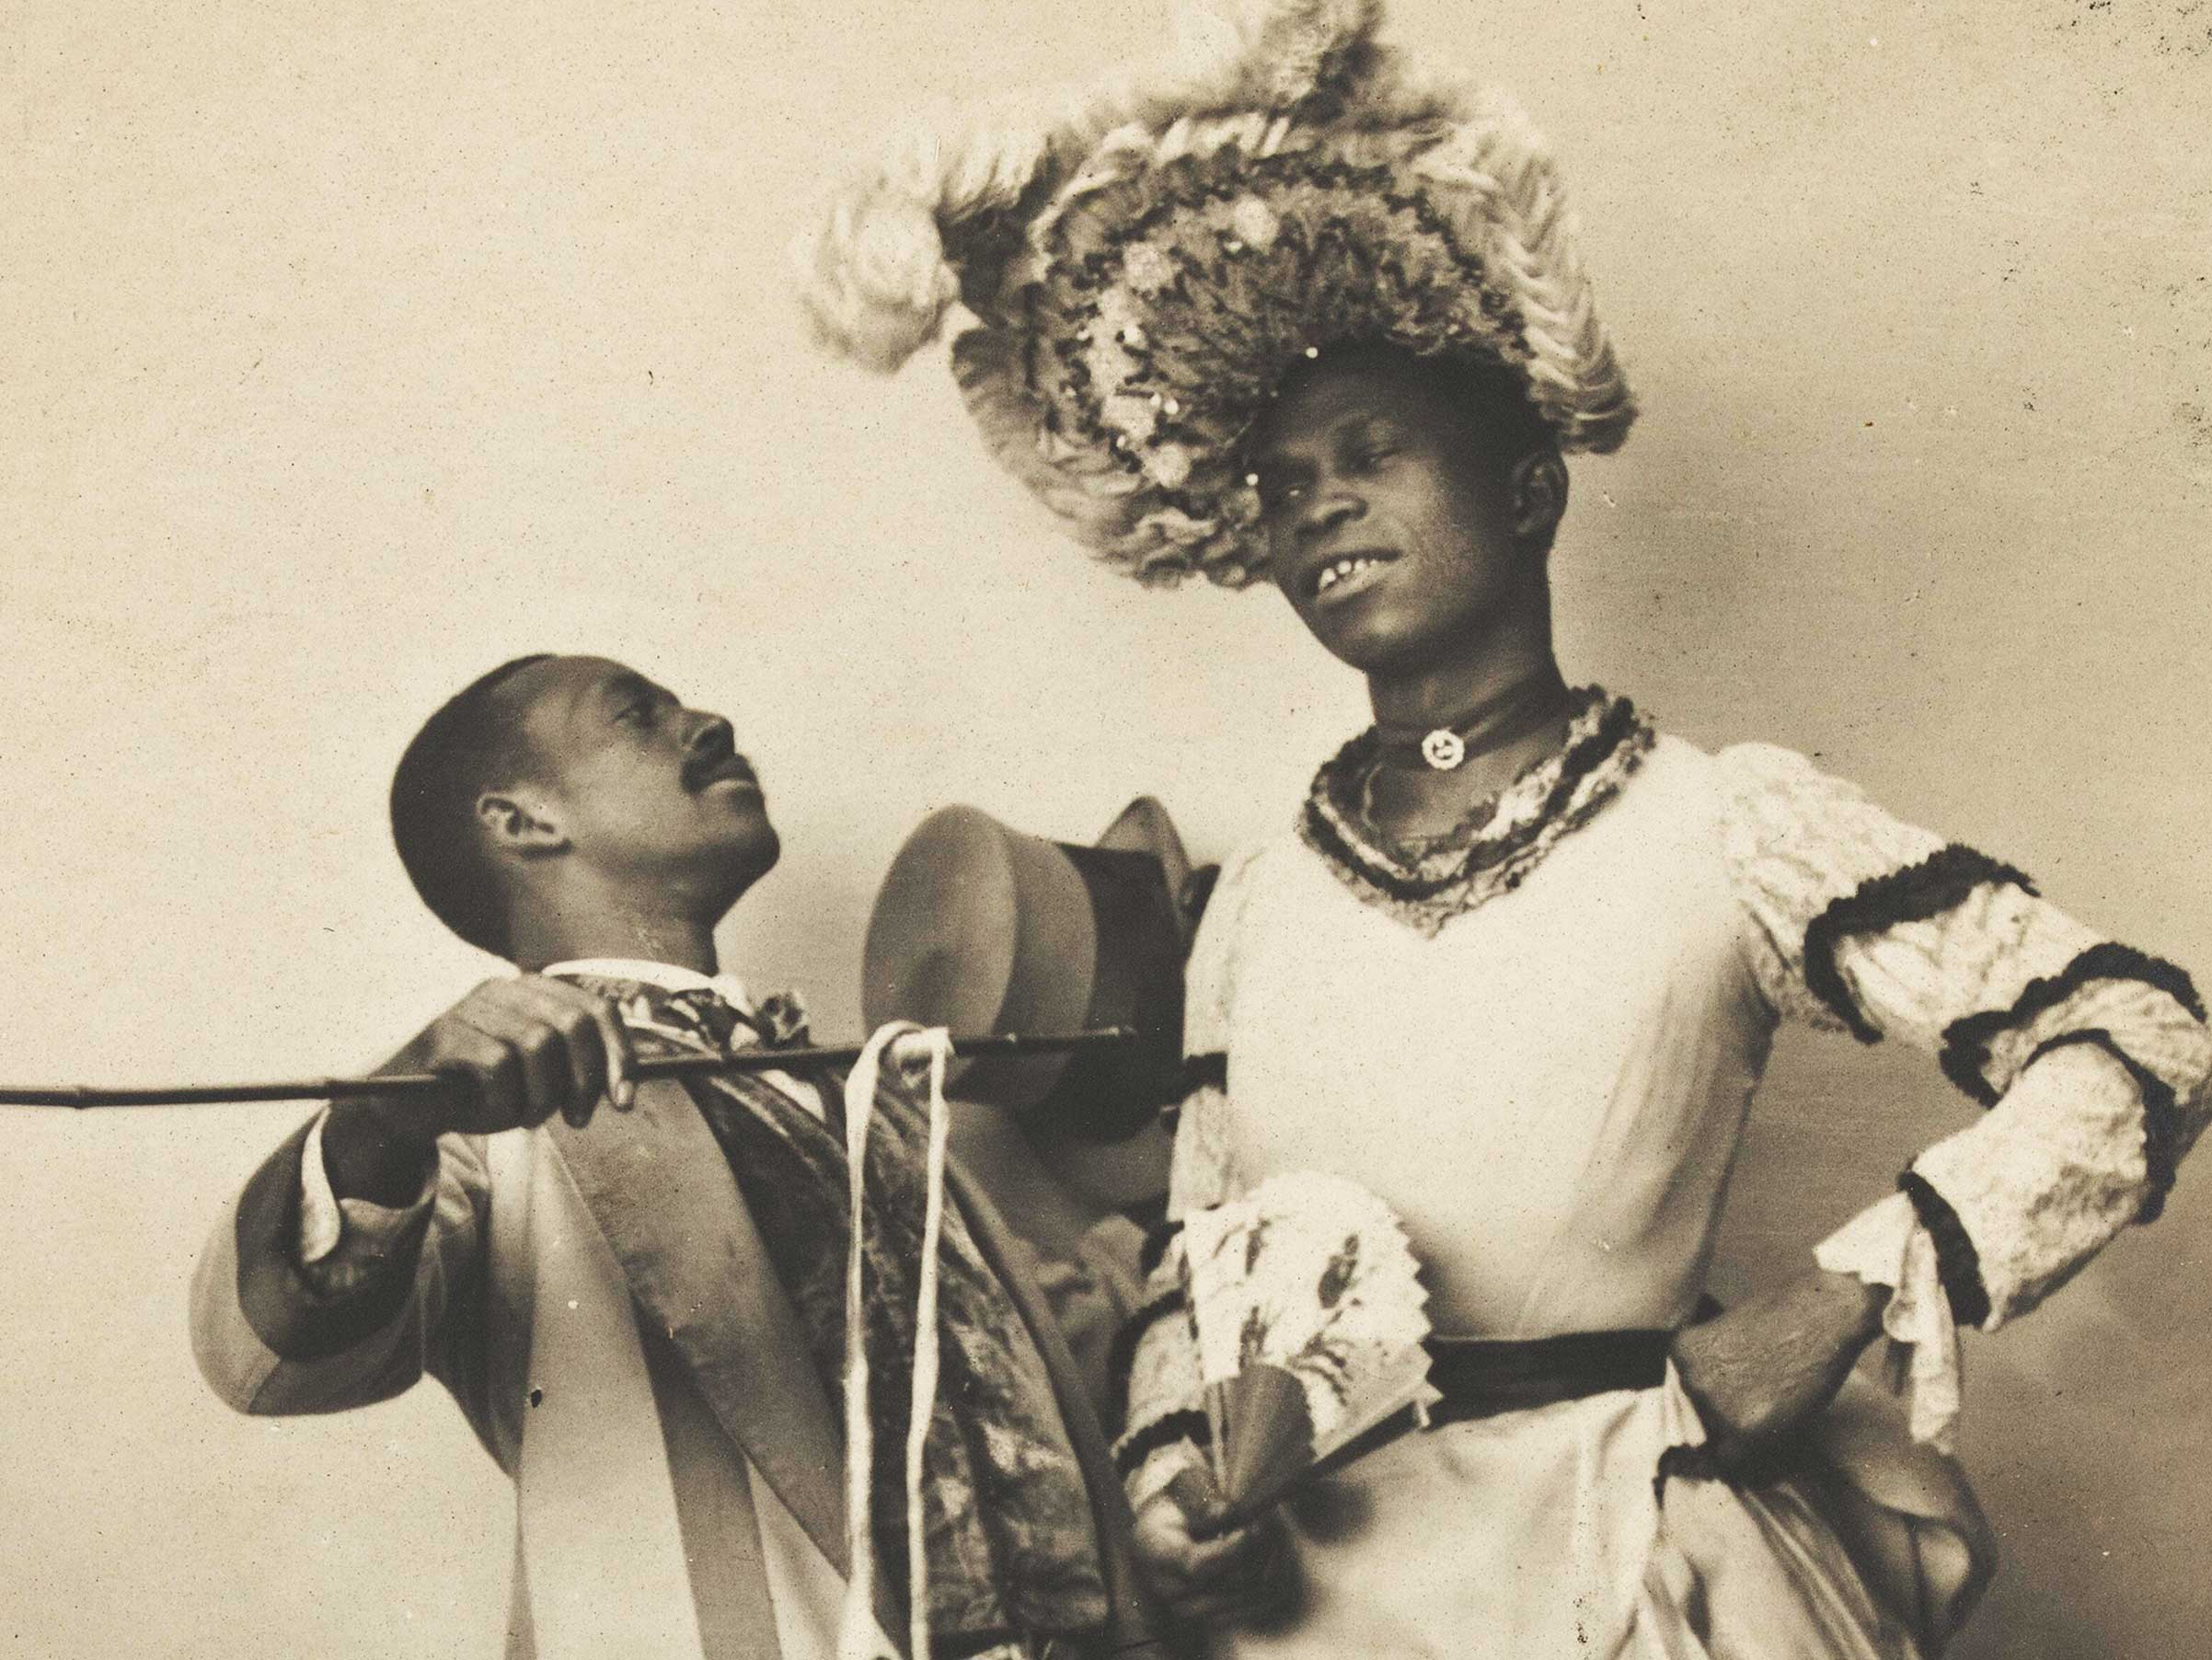 William Dorsey Swann, Queen of Drag: Uncovering America's Black Queer History